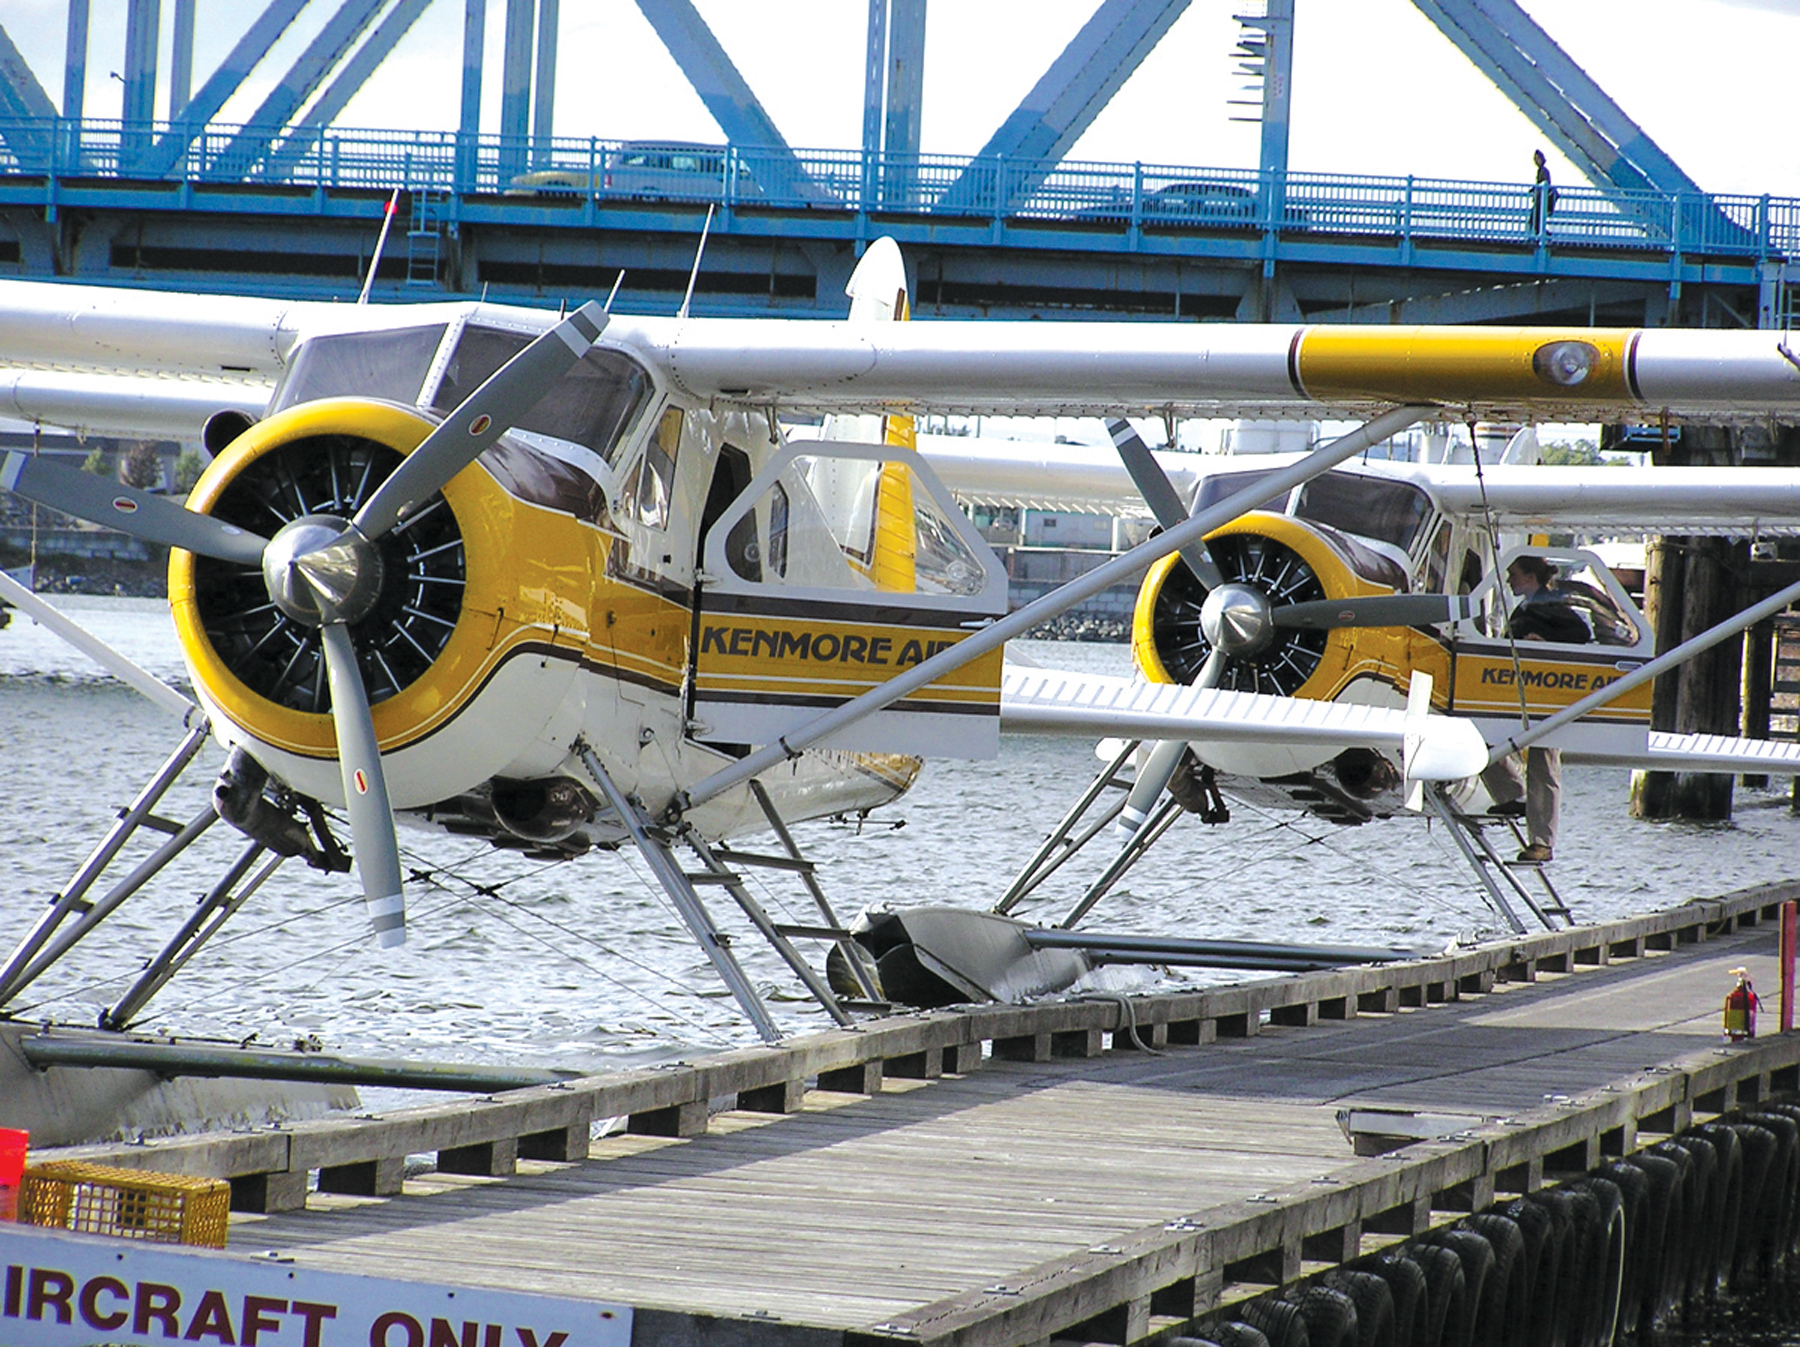 Kenmore Air: The Nation's Largest Floatplane Airline